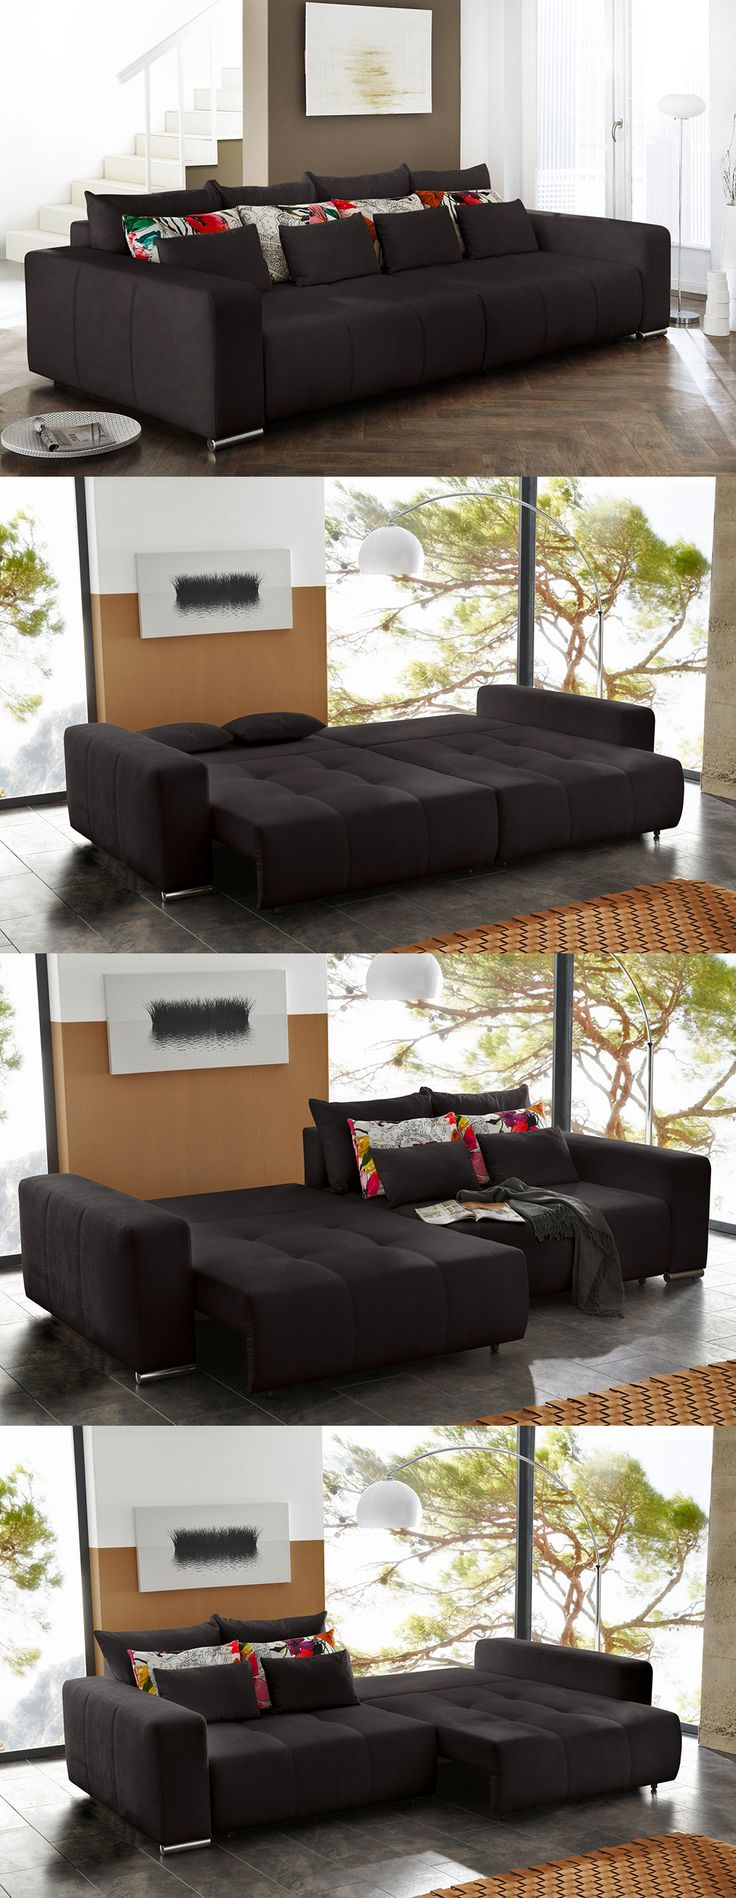 78 Best Ideas About Big Sofas On Pinterest Sofa Couch And Big Couch